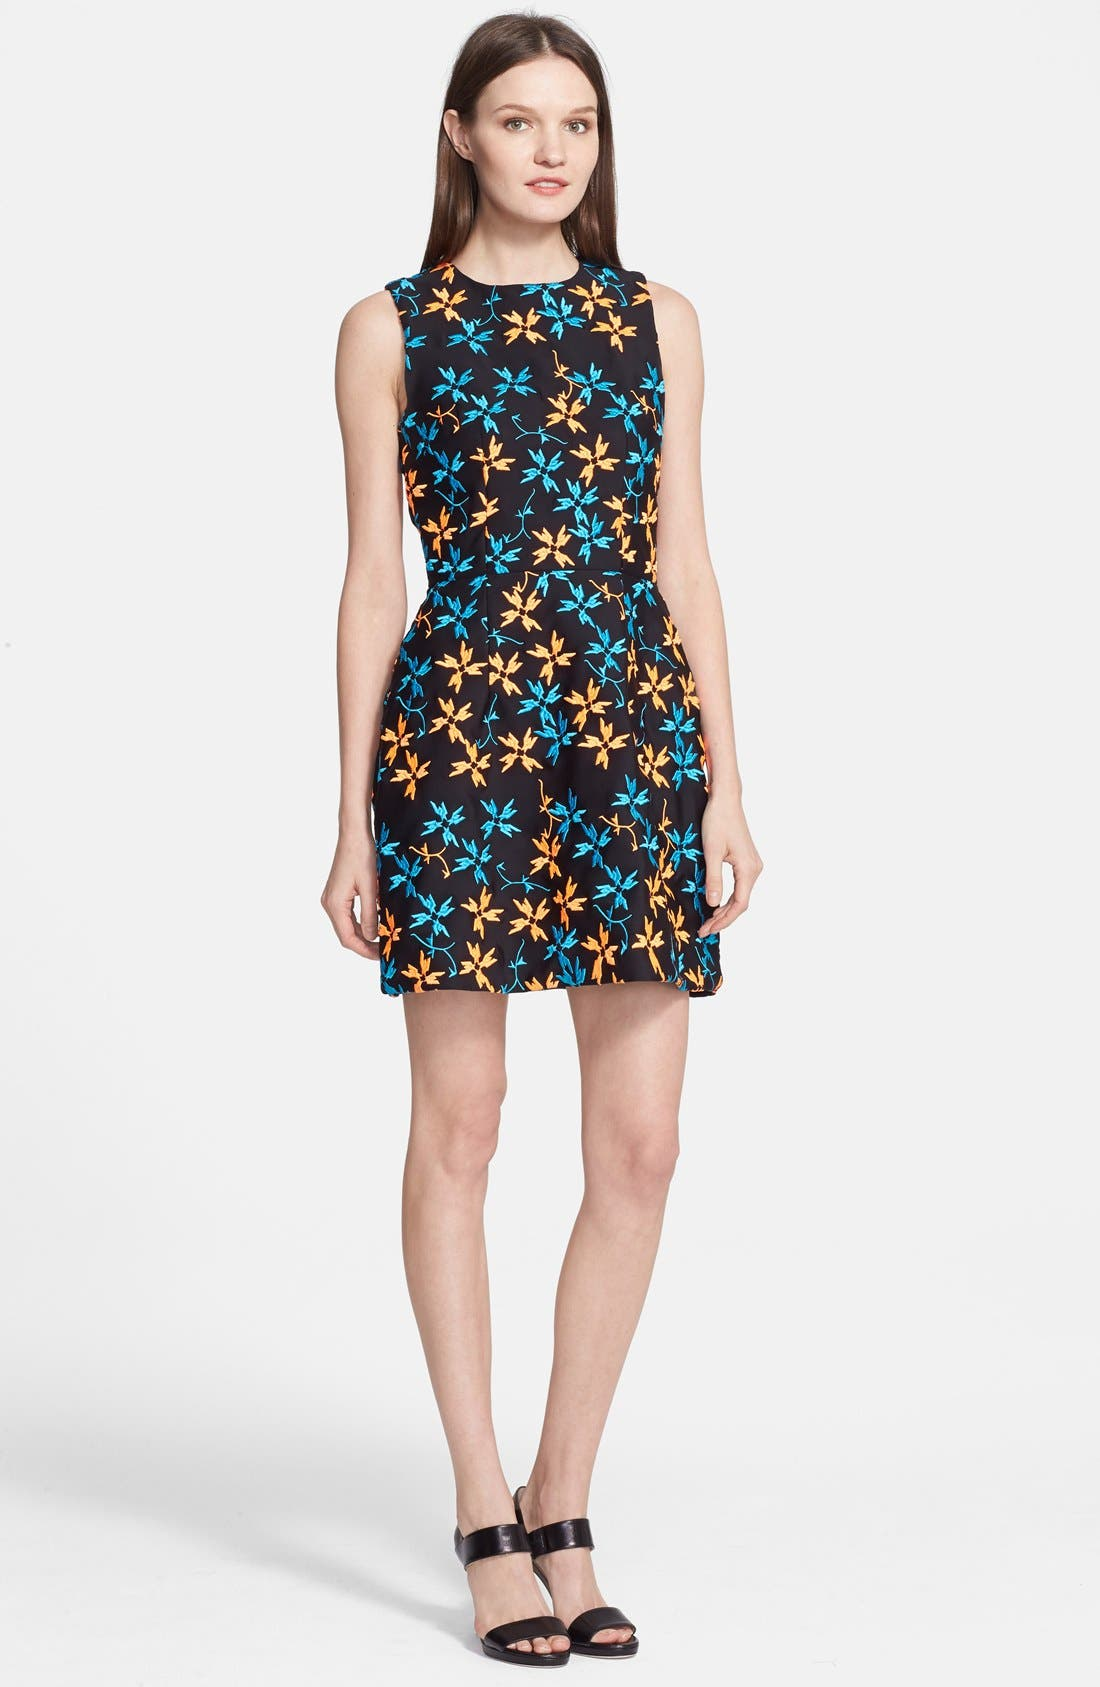 TANYA TAYLOR 'Michelle' Embroidered Dress, Main, color, 001